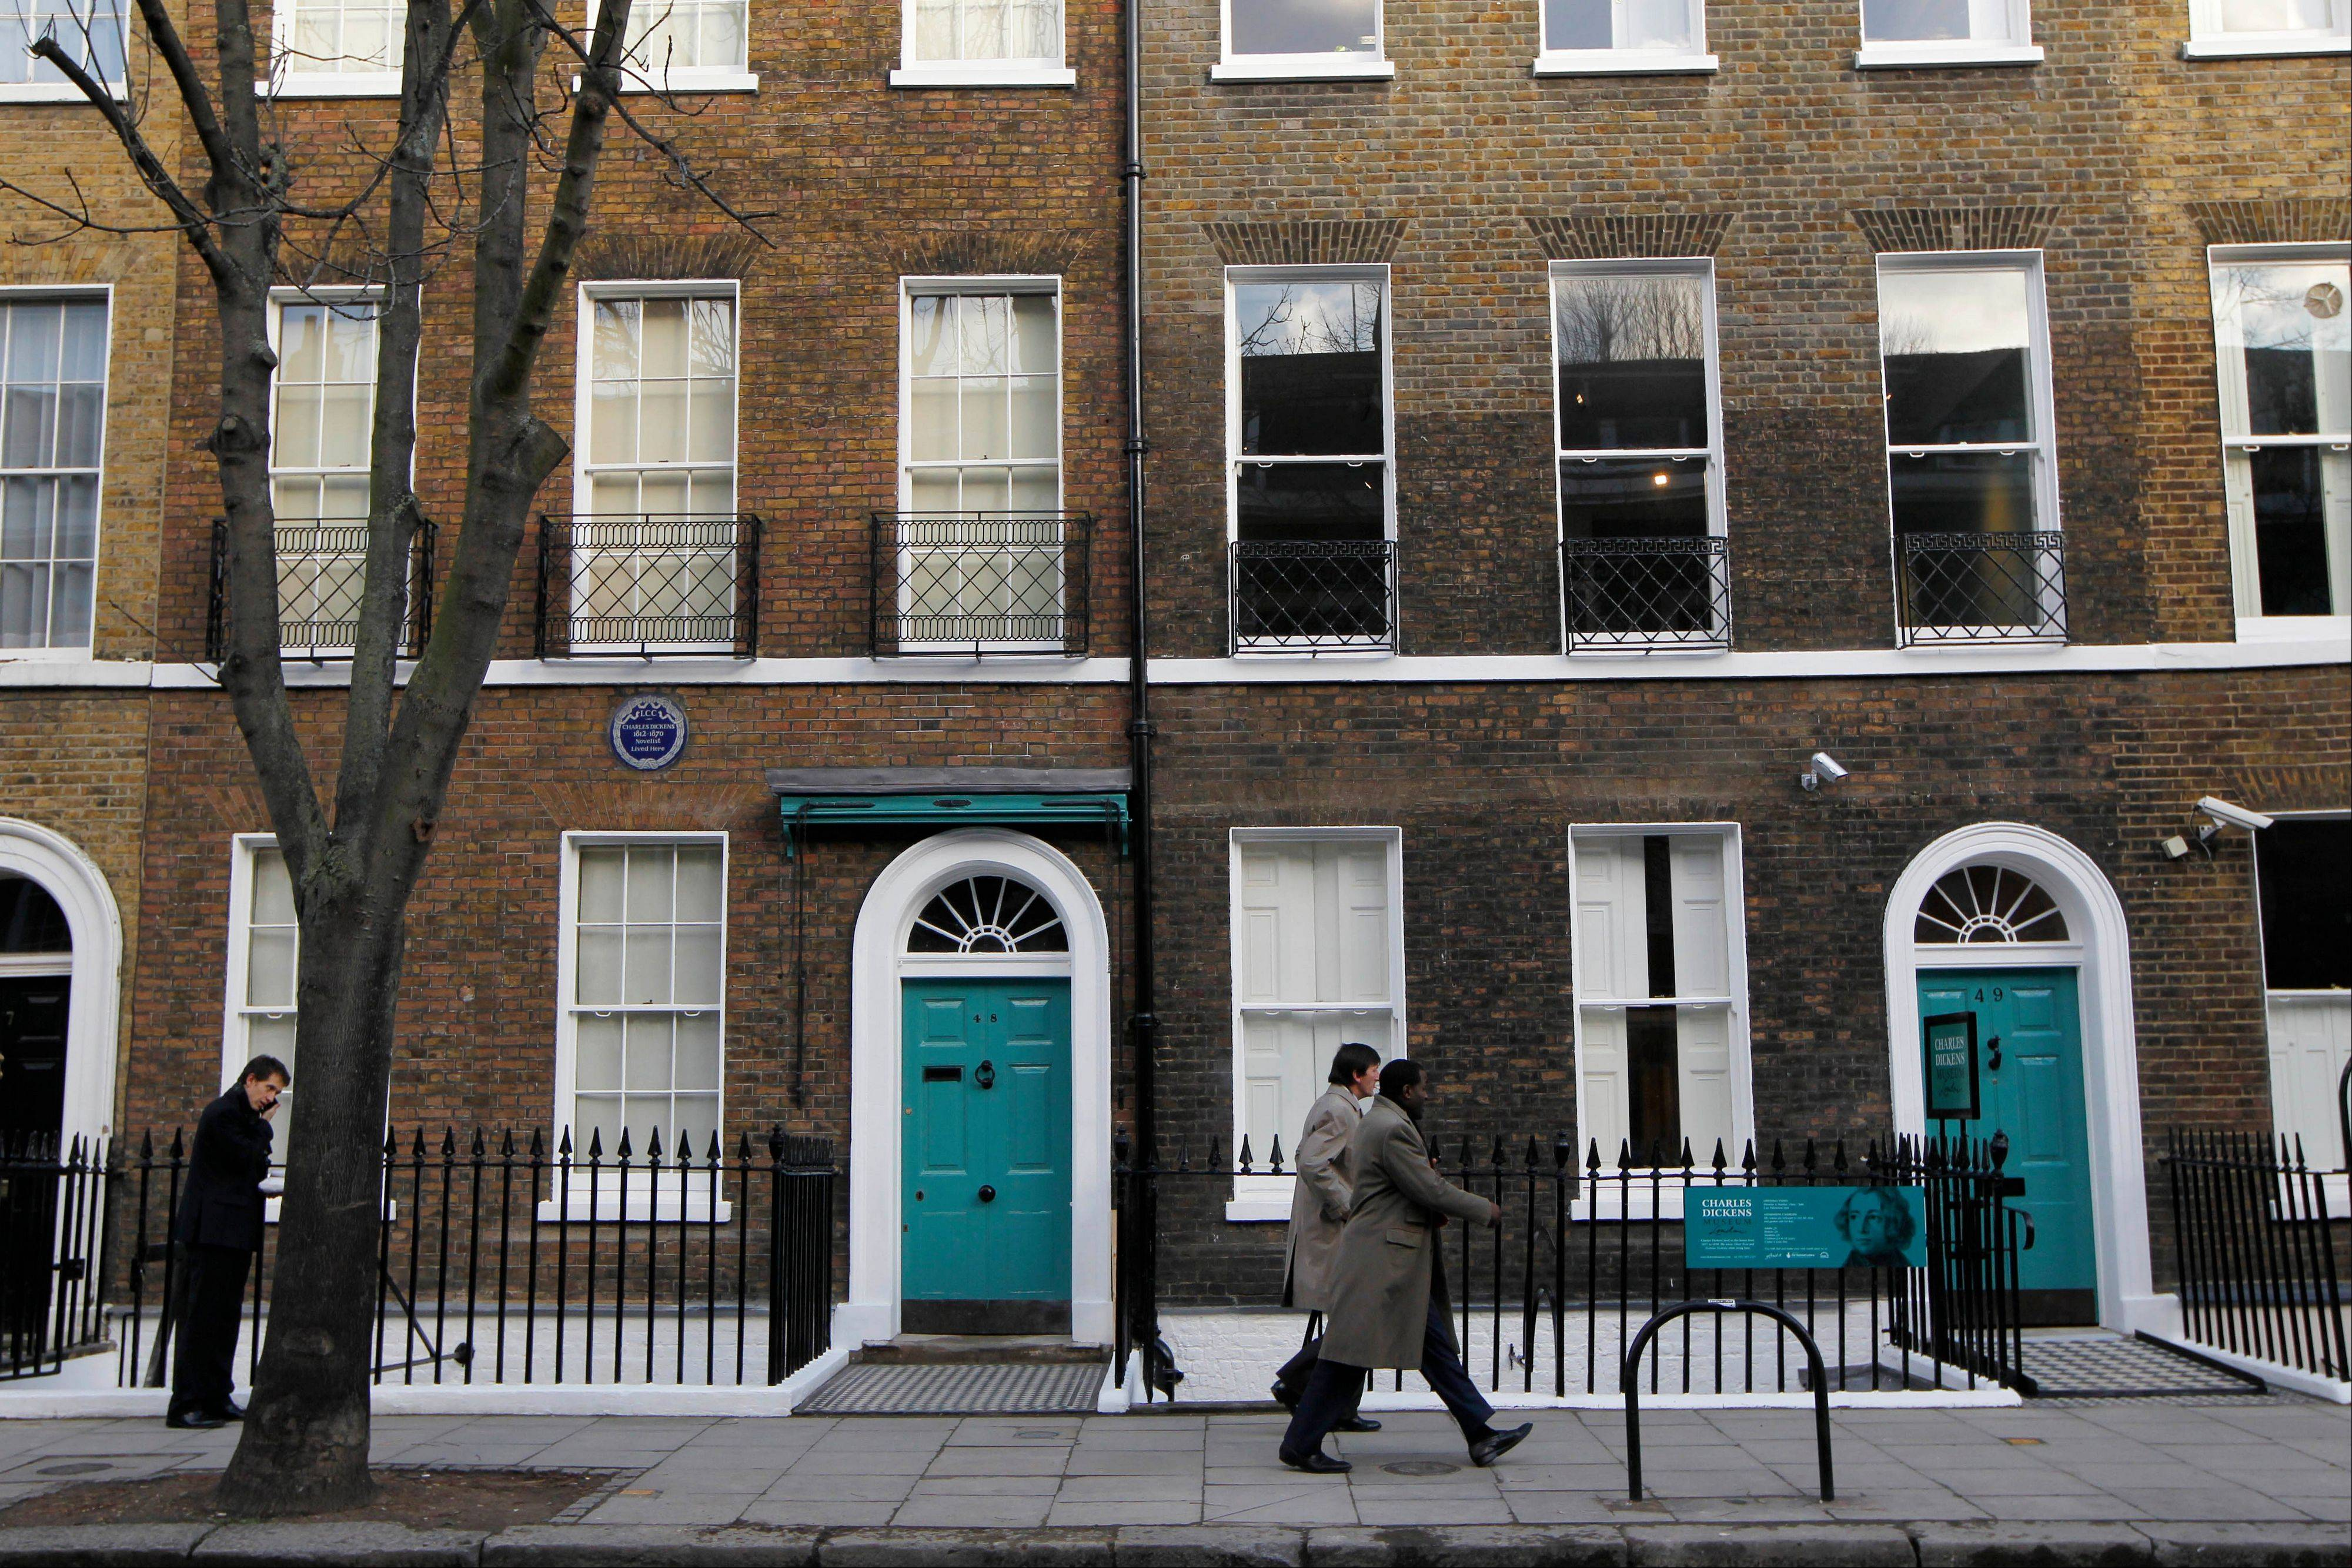 People walk past Charles Dickens' home, left, part of the Charles Dickens Museum in London. For years, the four-story brick row house where the author lived with his young family was a neglected museum.